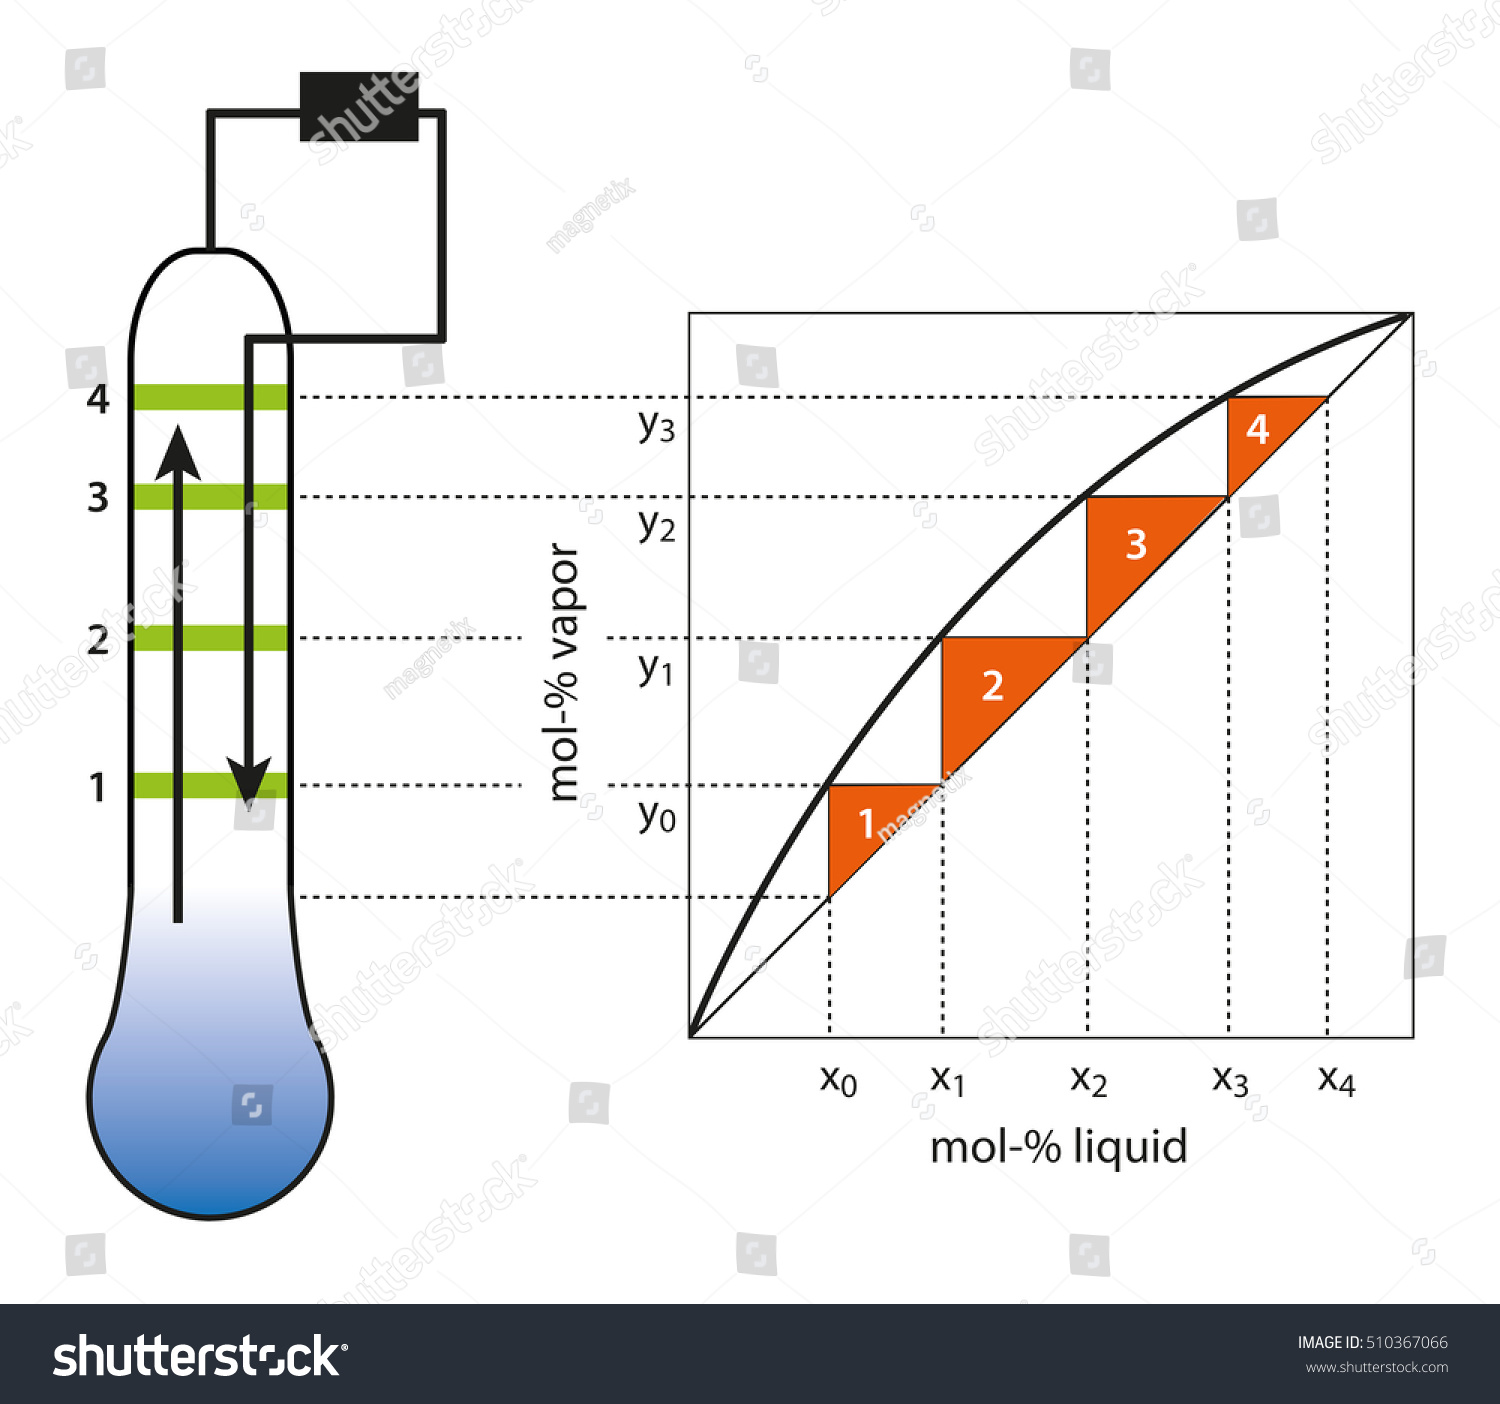 Correlation single distillation stages theoretical plates stock correlation of single distillation stages to theoretical plates in a rectification column pooptronica Images